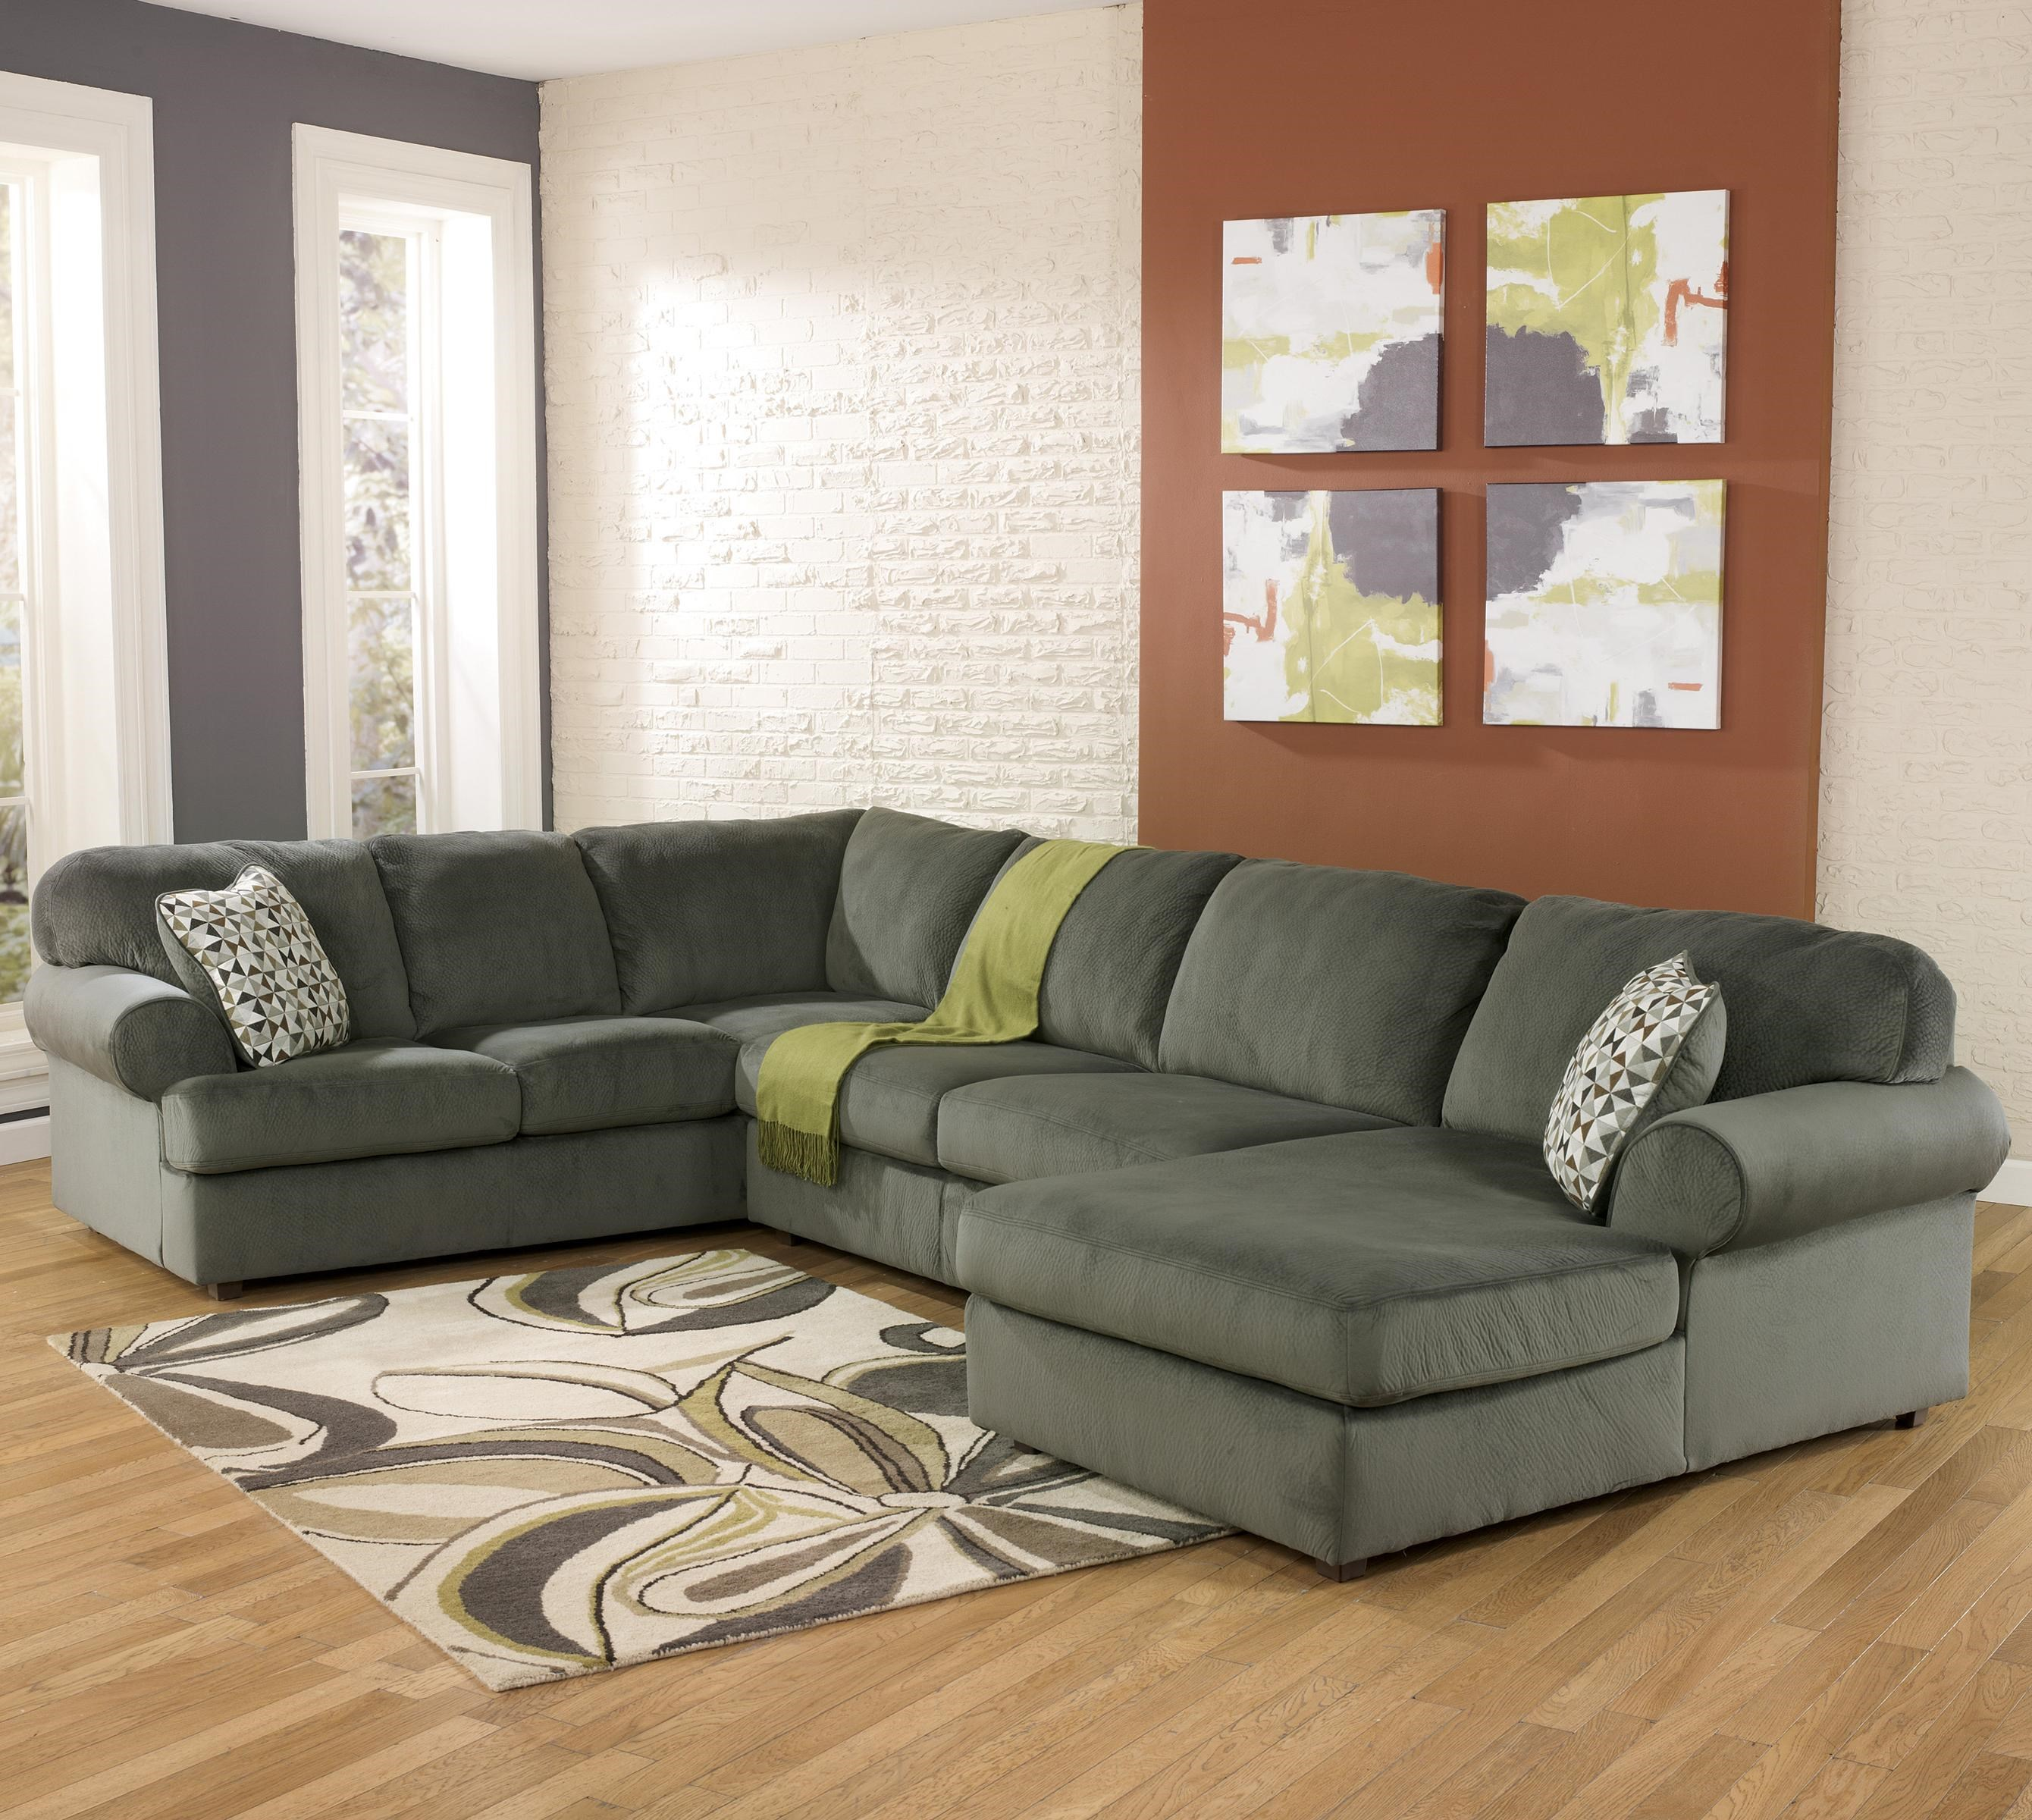 Ashley Signature Design Jessa Place   Pewter Casual Sectional Sofa With  Right Chaise